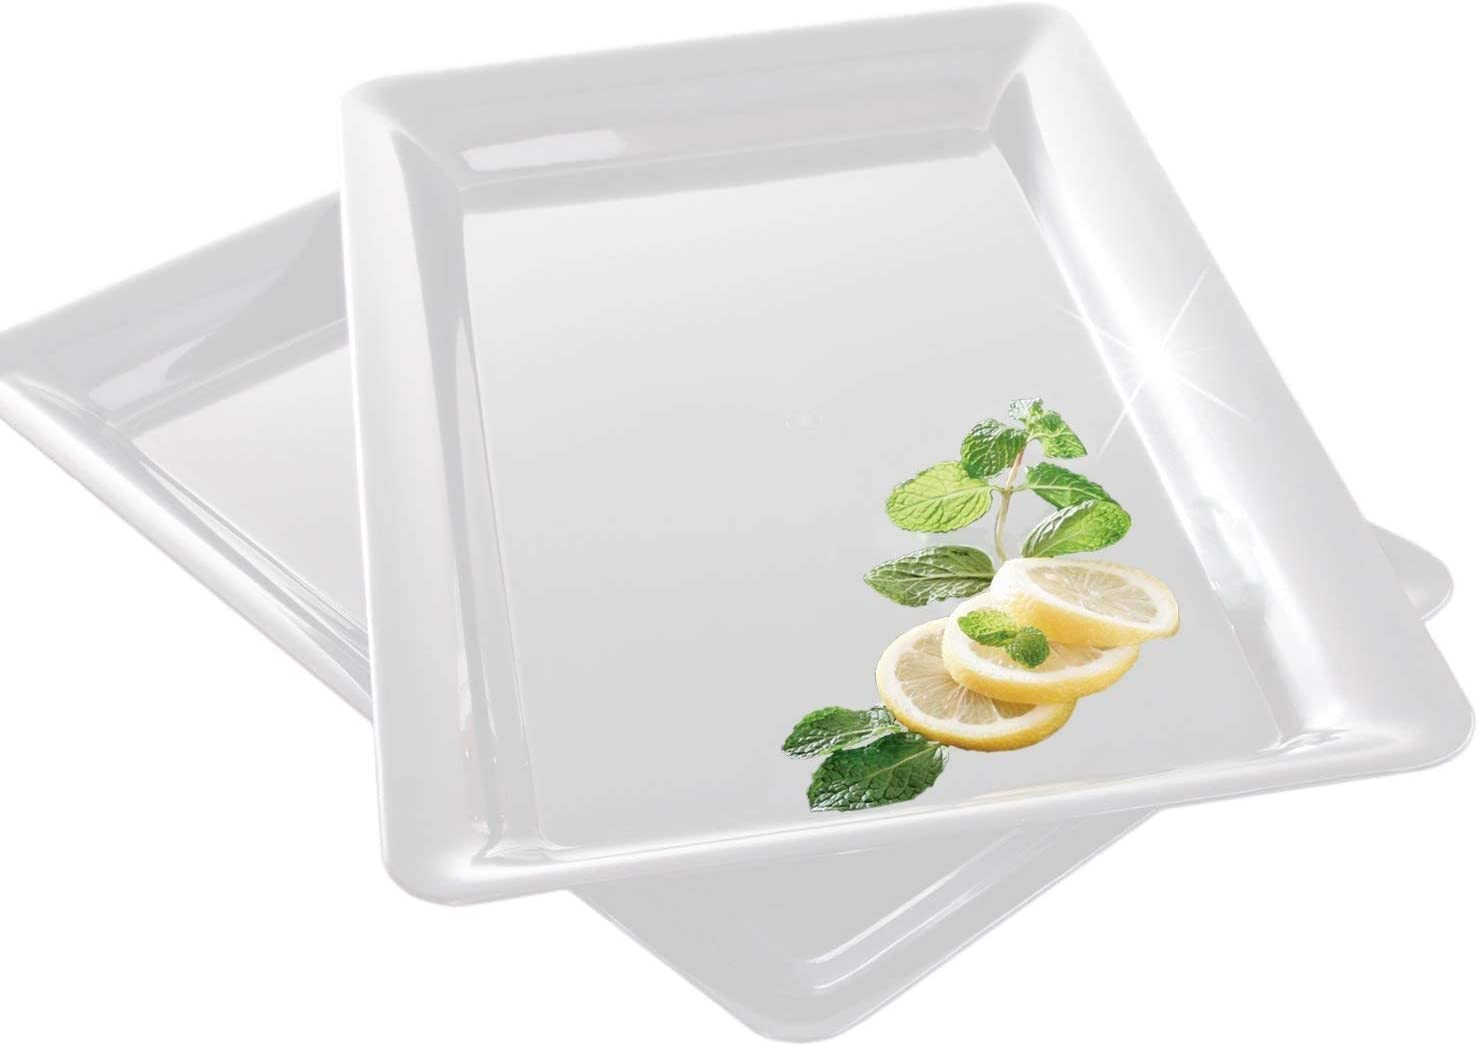 "4 Rectangle White Plastic Trays Heavy Duty Plastic Serving Tray 12"" x 18"" Serving Platters Food Tray Decorative Serving Trays Wedding Platter Party Trays Great Disposable Serving Party Platters White"